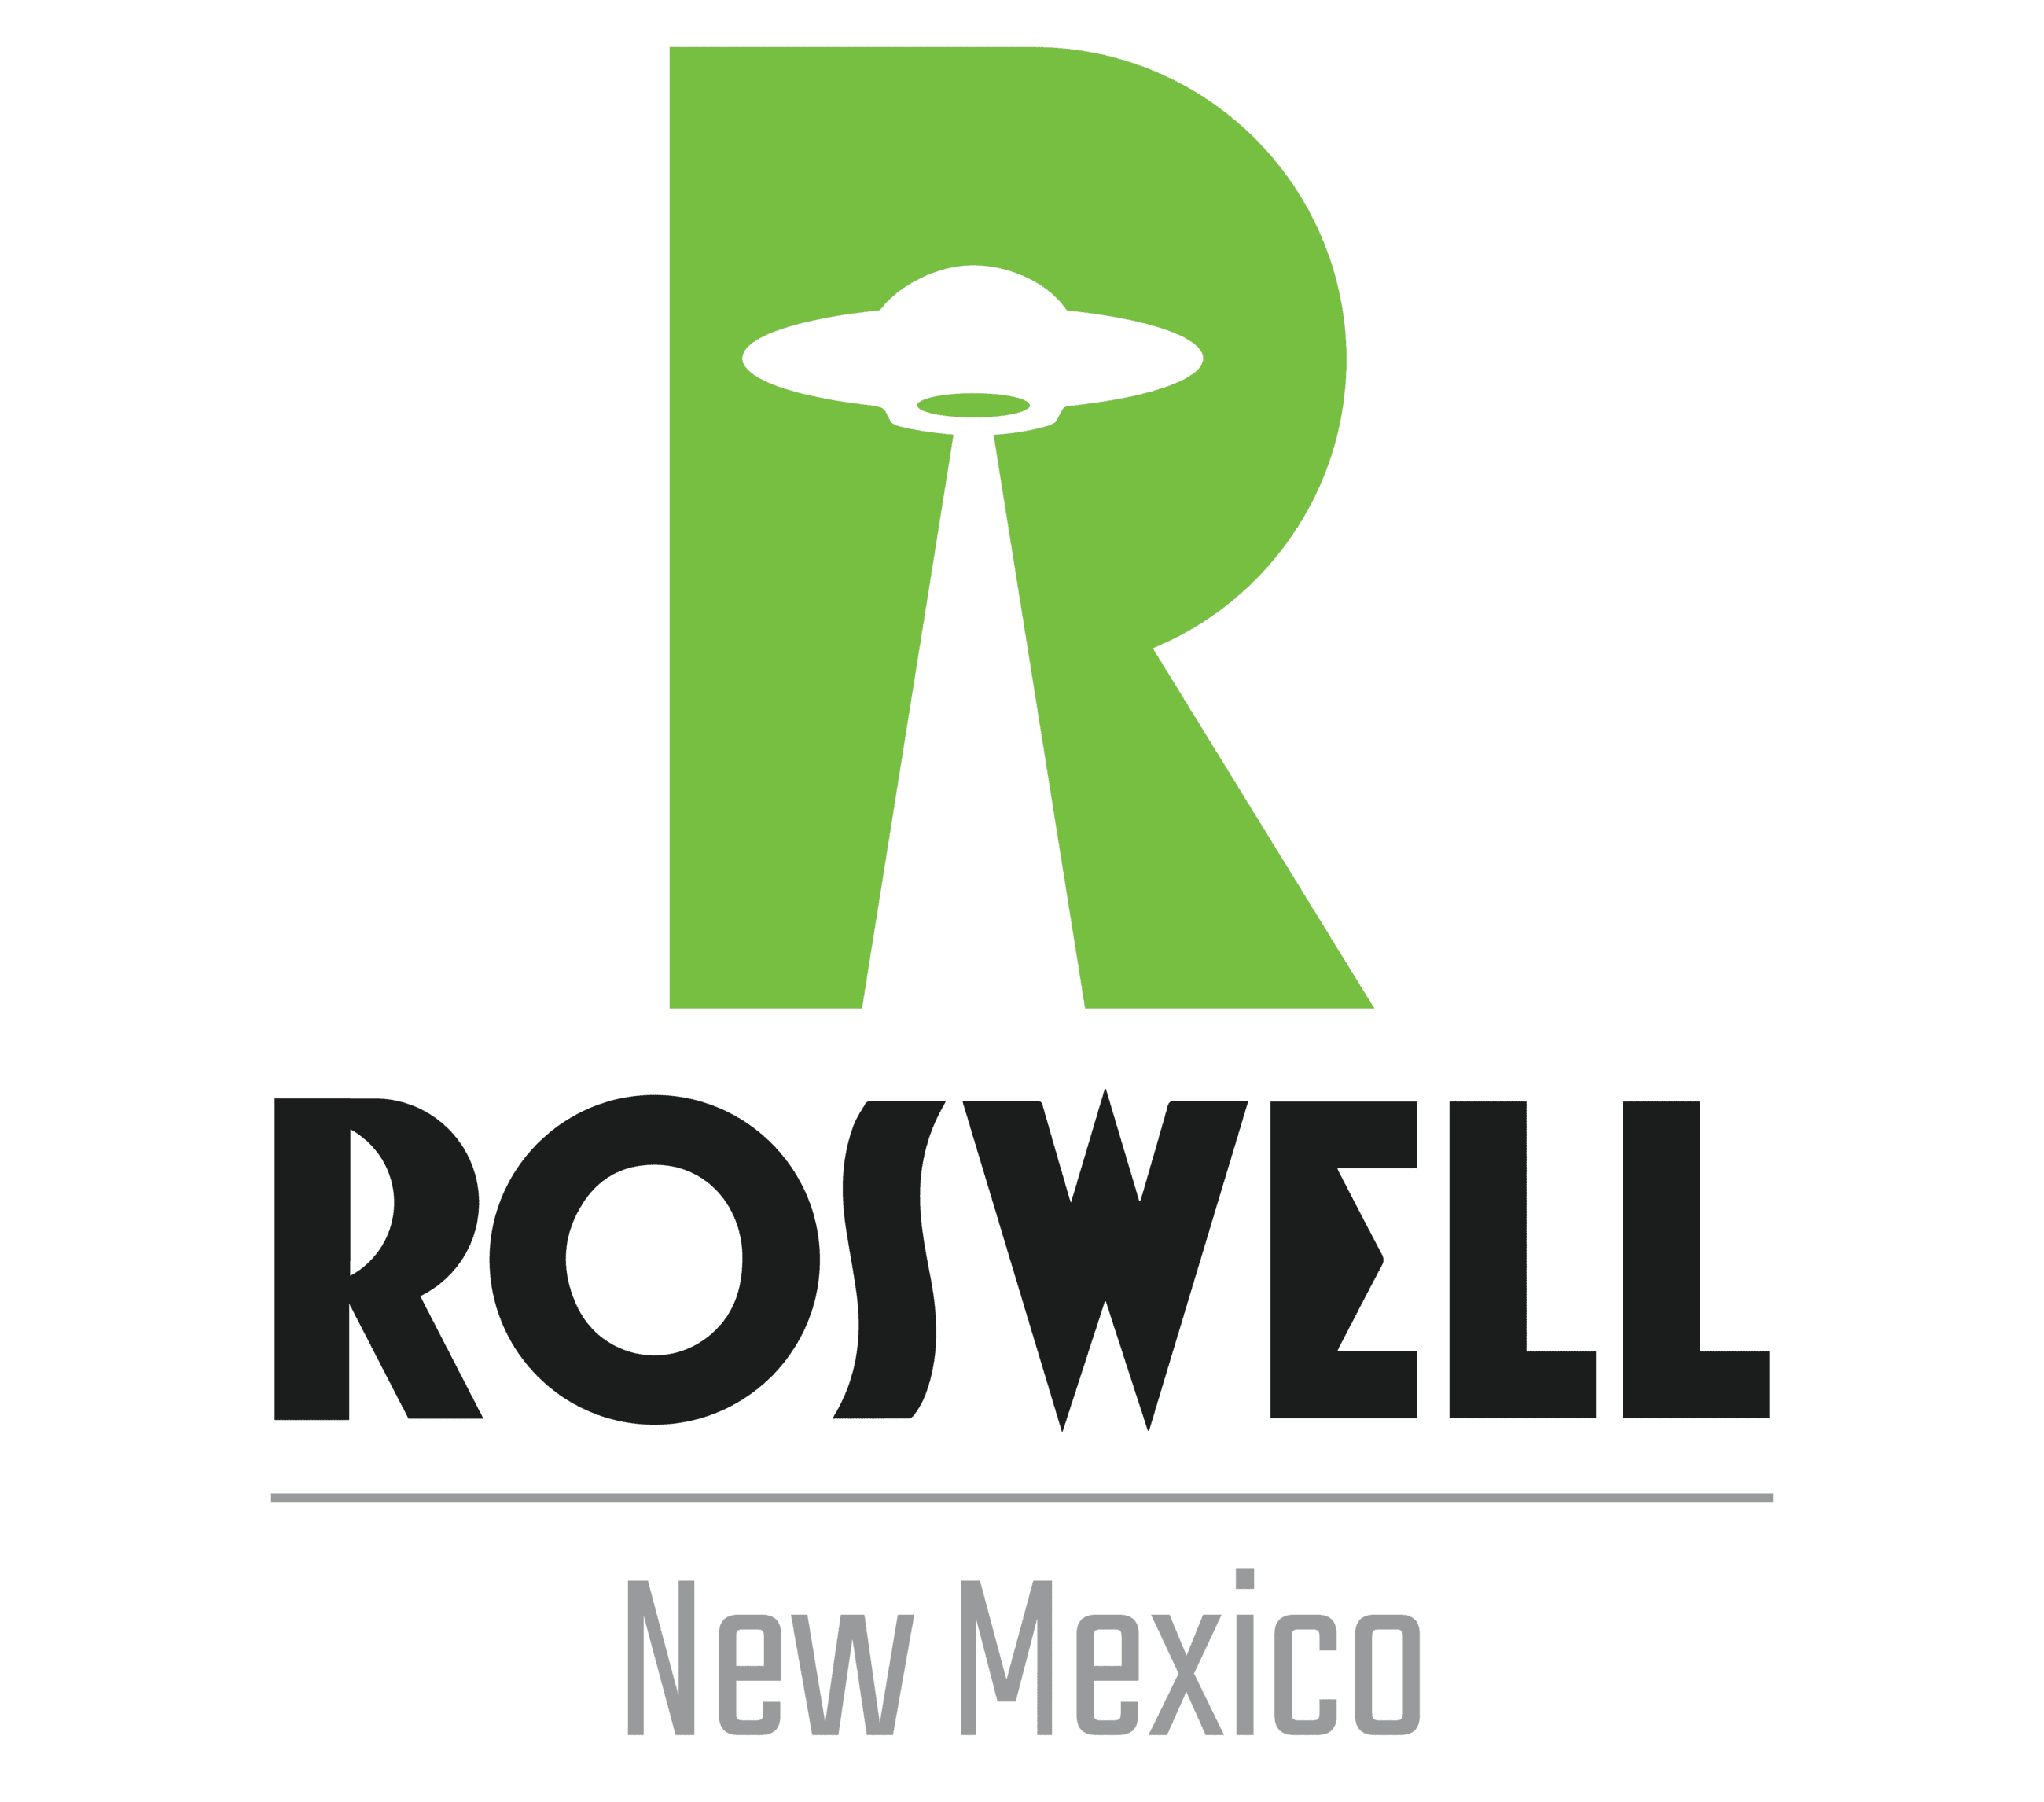 Roswell city logo